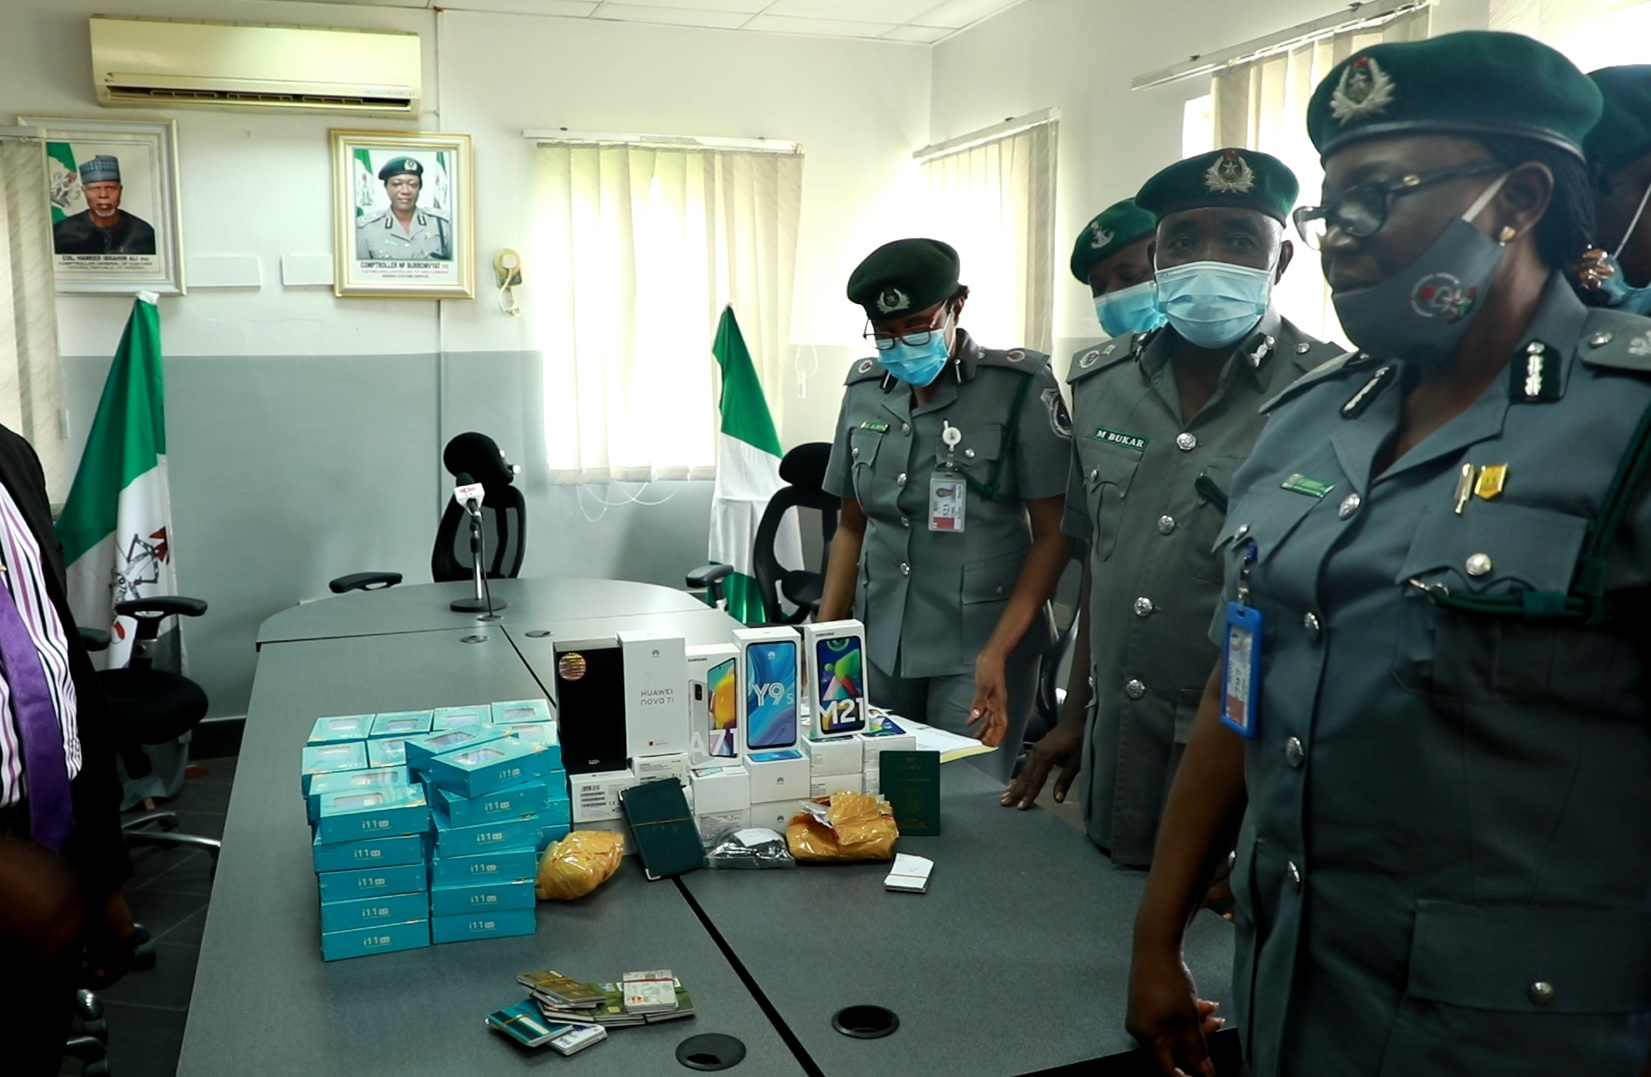 Few days after thousands of ATMs and sim cards were intercepted by officers of the Nigeria customs service at the Lagos international airport; officers of the Nigeria customs at the Abuja airport have again arrested two travelers carrying dozens of ATMs among other items.